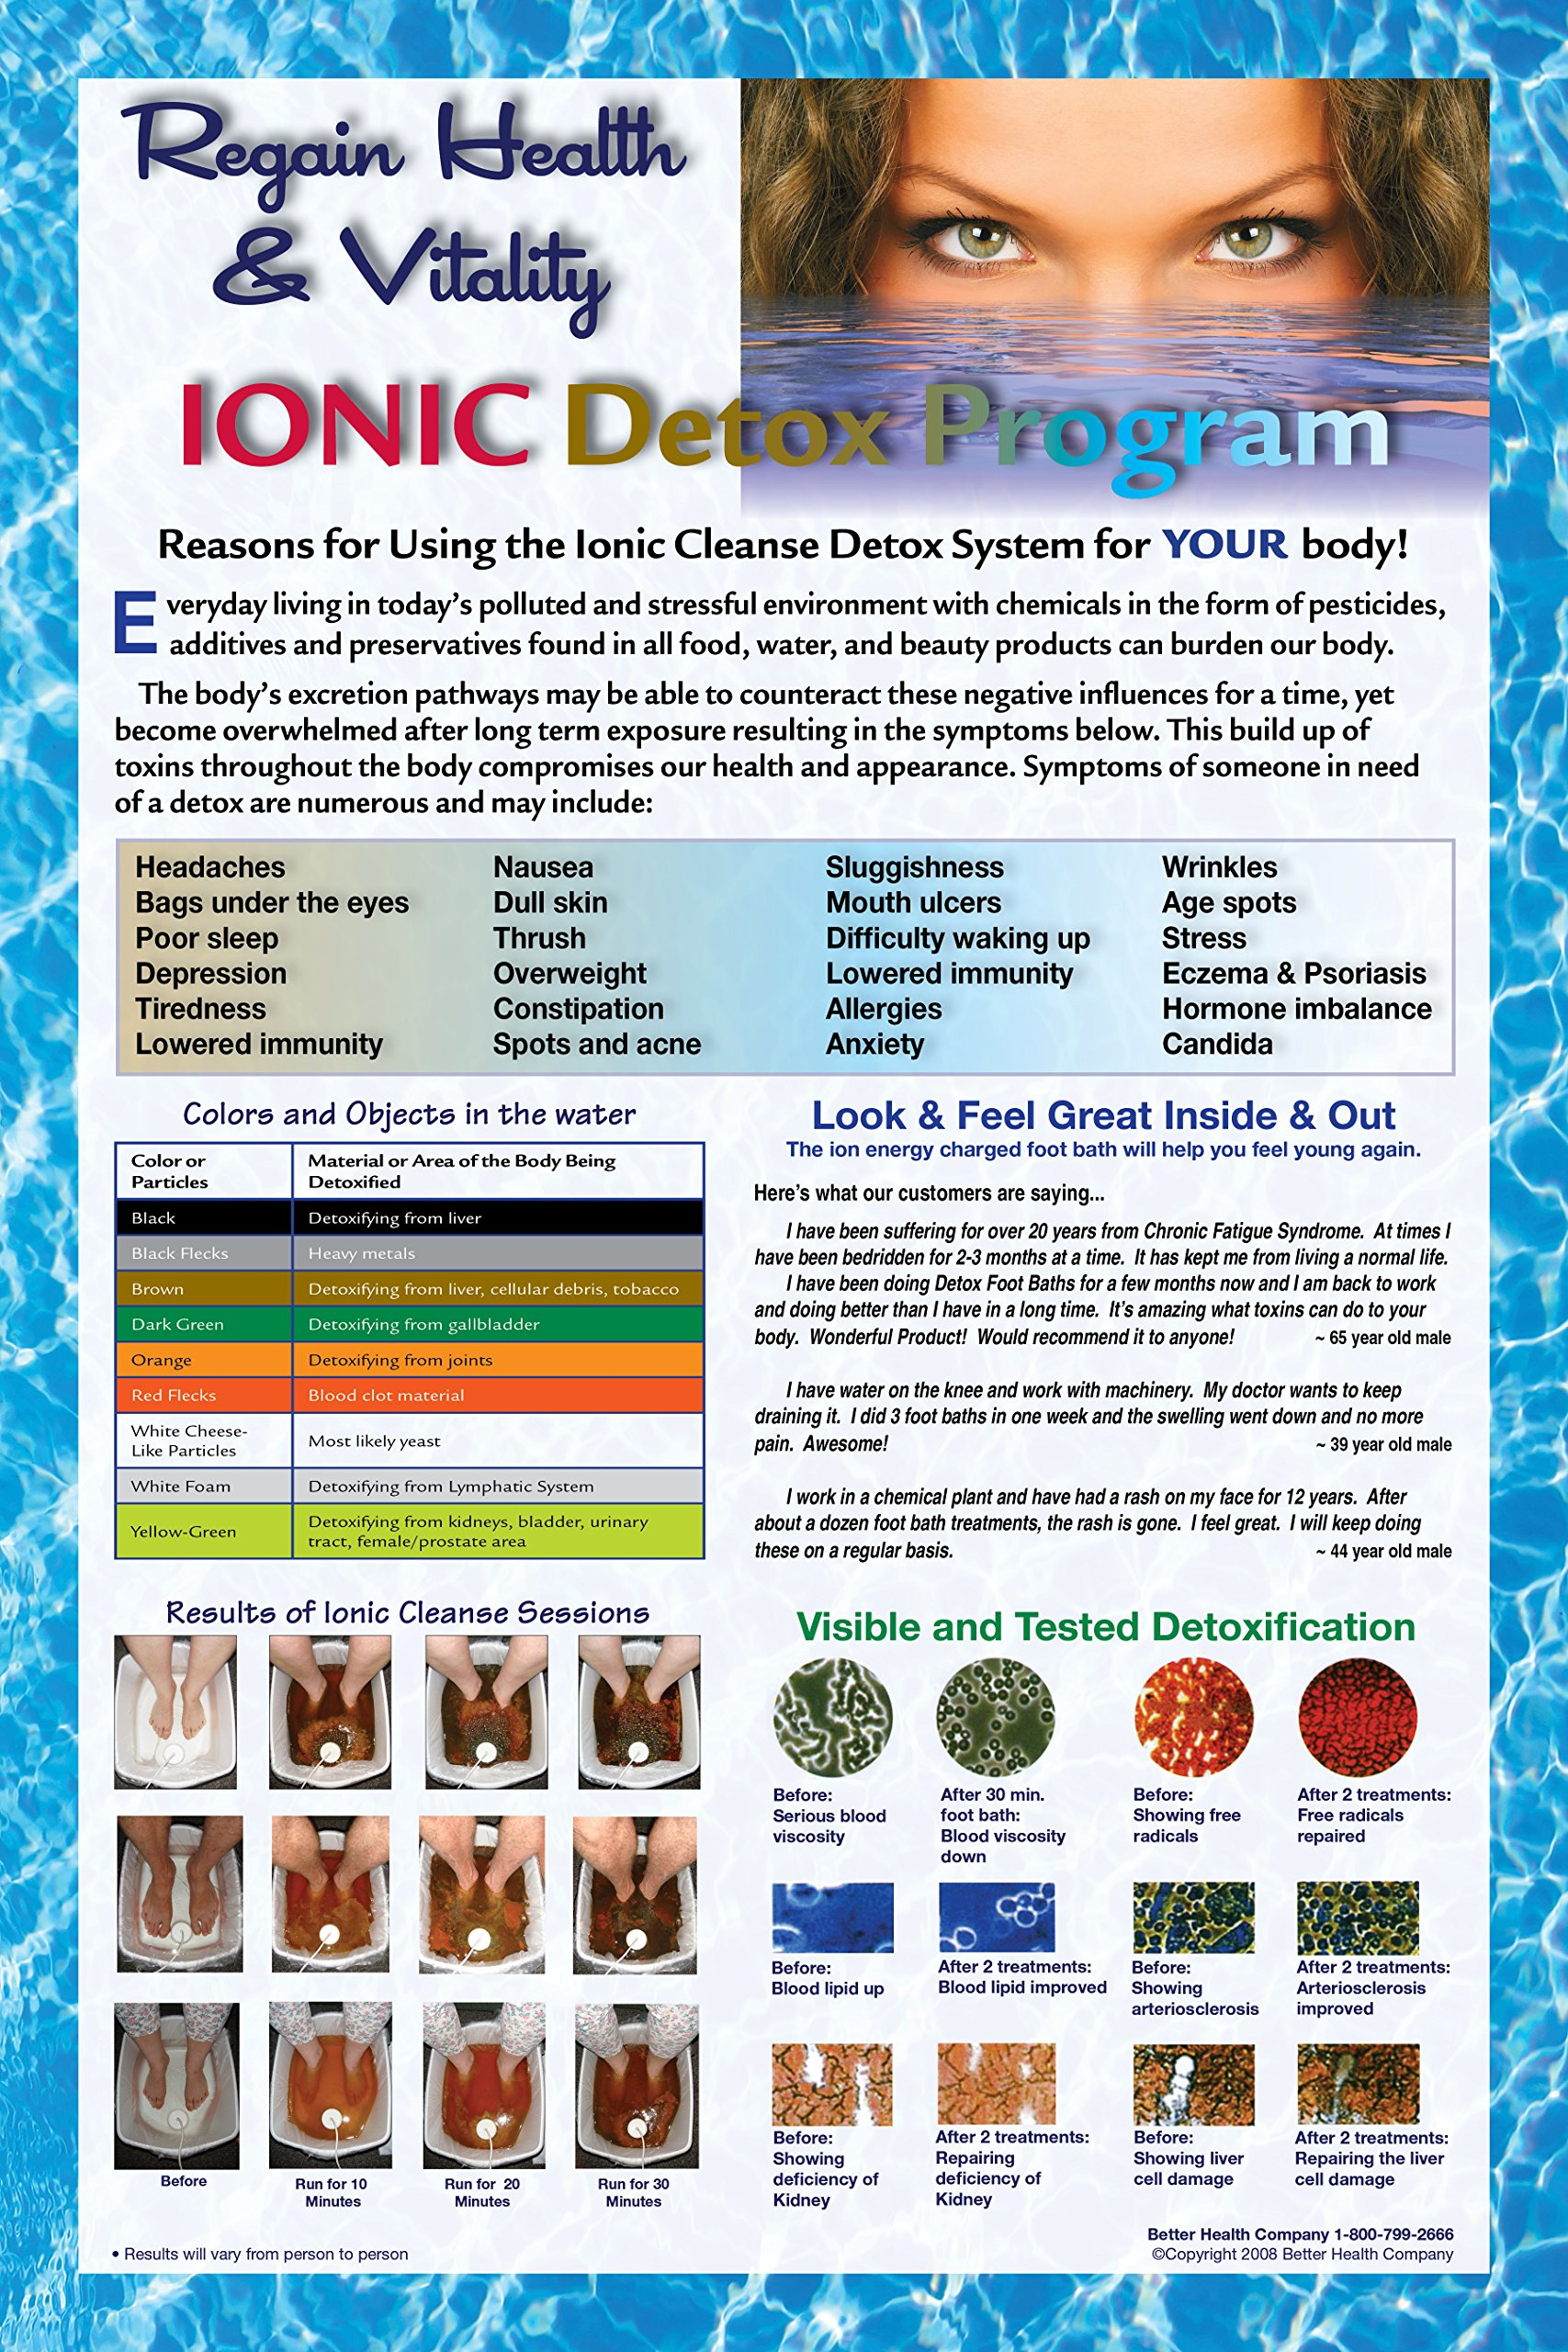 LARGE SIZE 24 X 36, Ion Detox Ionic Foot Bath Spa Chi Cleanse Promotional Poster. Increase your Detox Foot Spa Sessions and Increase Income. Colorful Promotional Poster for Detox Foot Spa